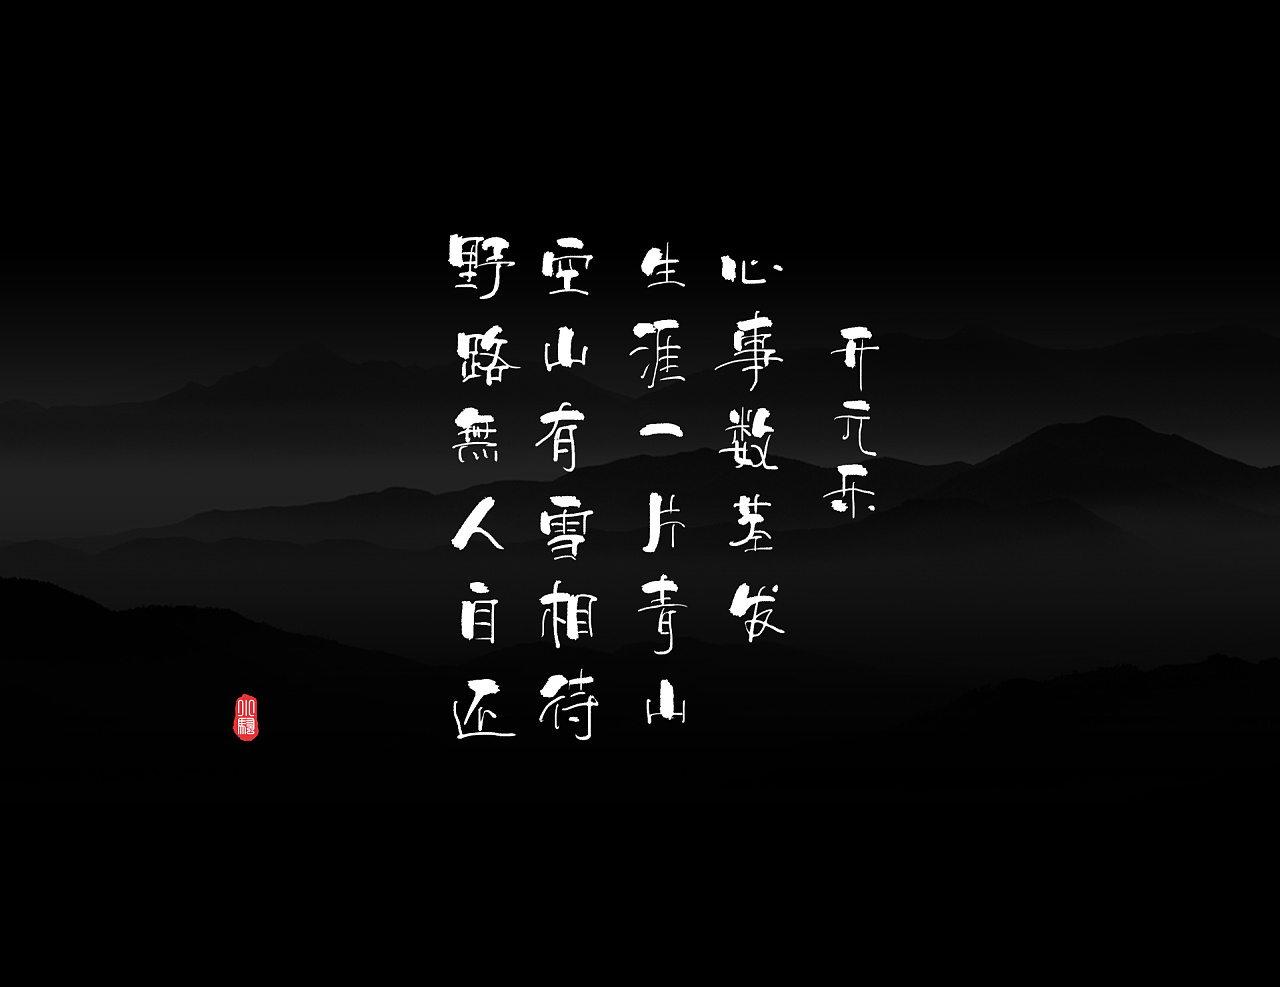 chinesefontdesign.com 2018 02 04 12 38 10 061365 50P Li Sao of Tang Song style Chinese Design Inspiration